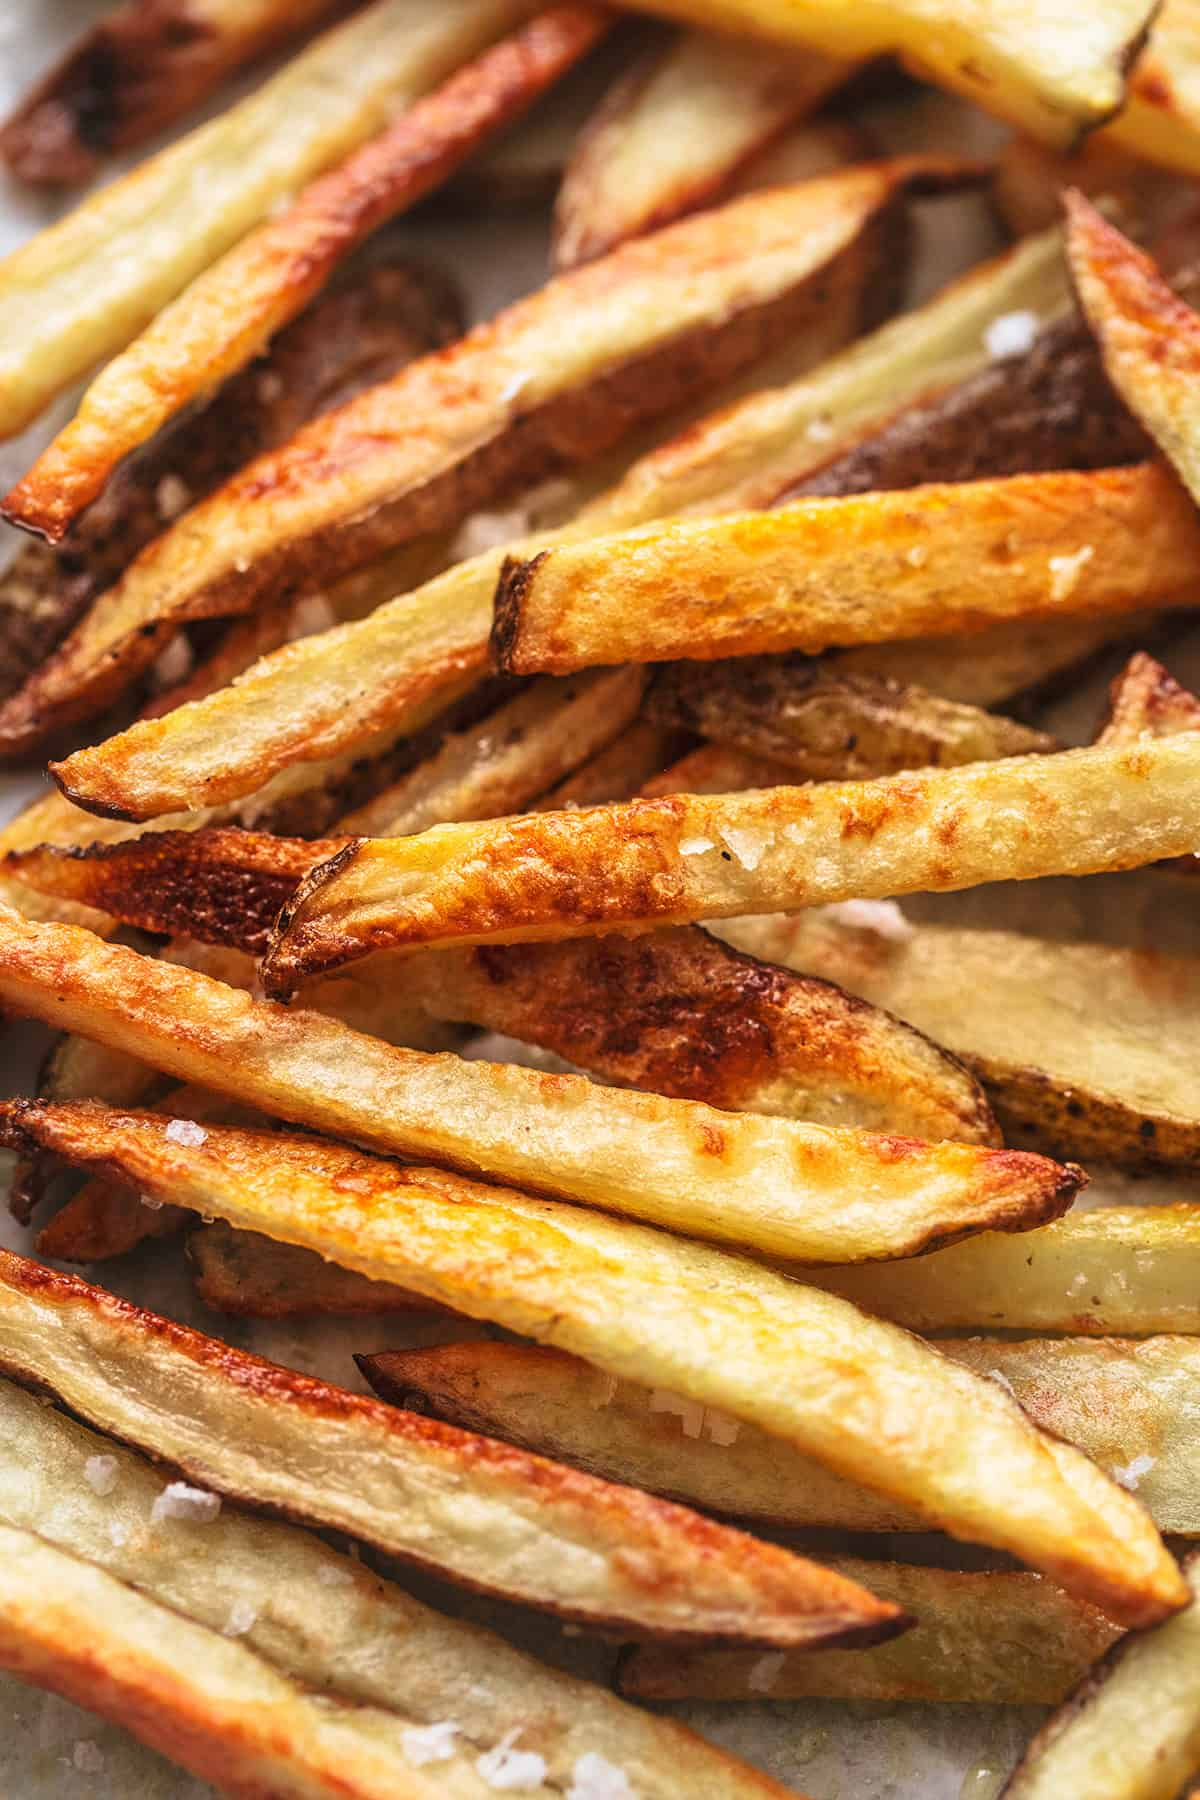 up close baked french fries with salt